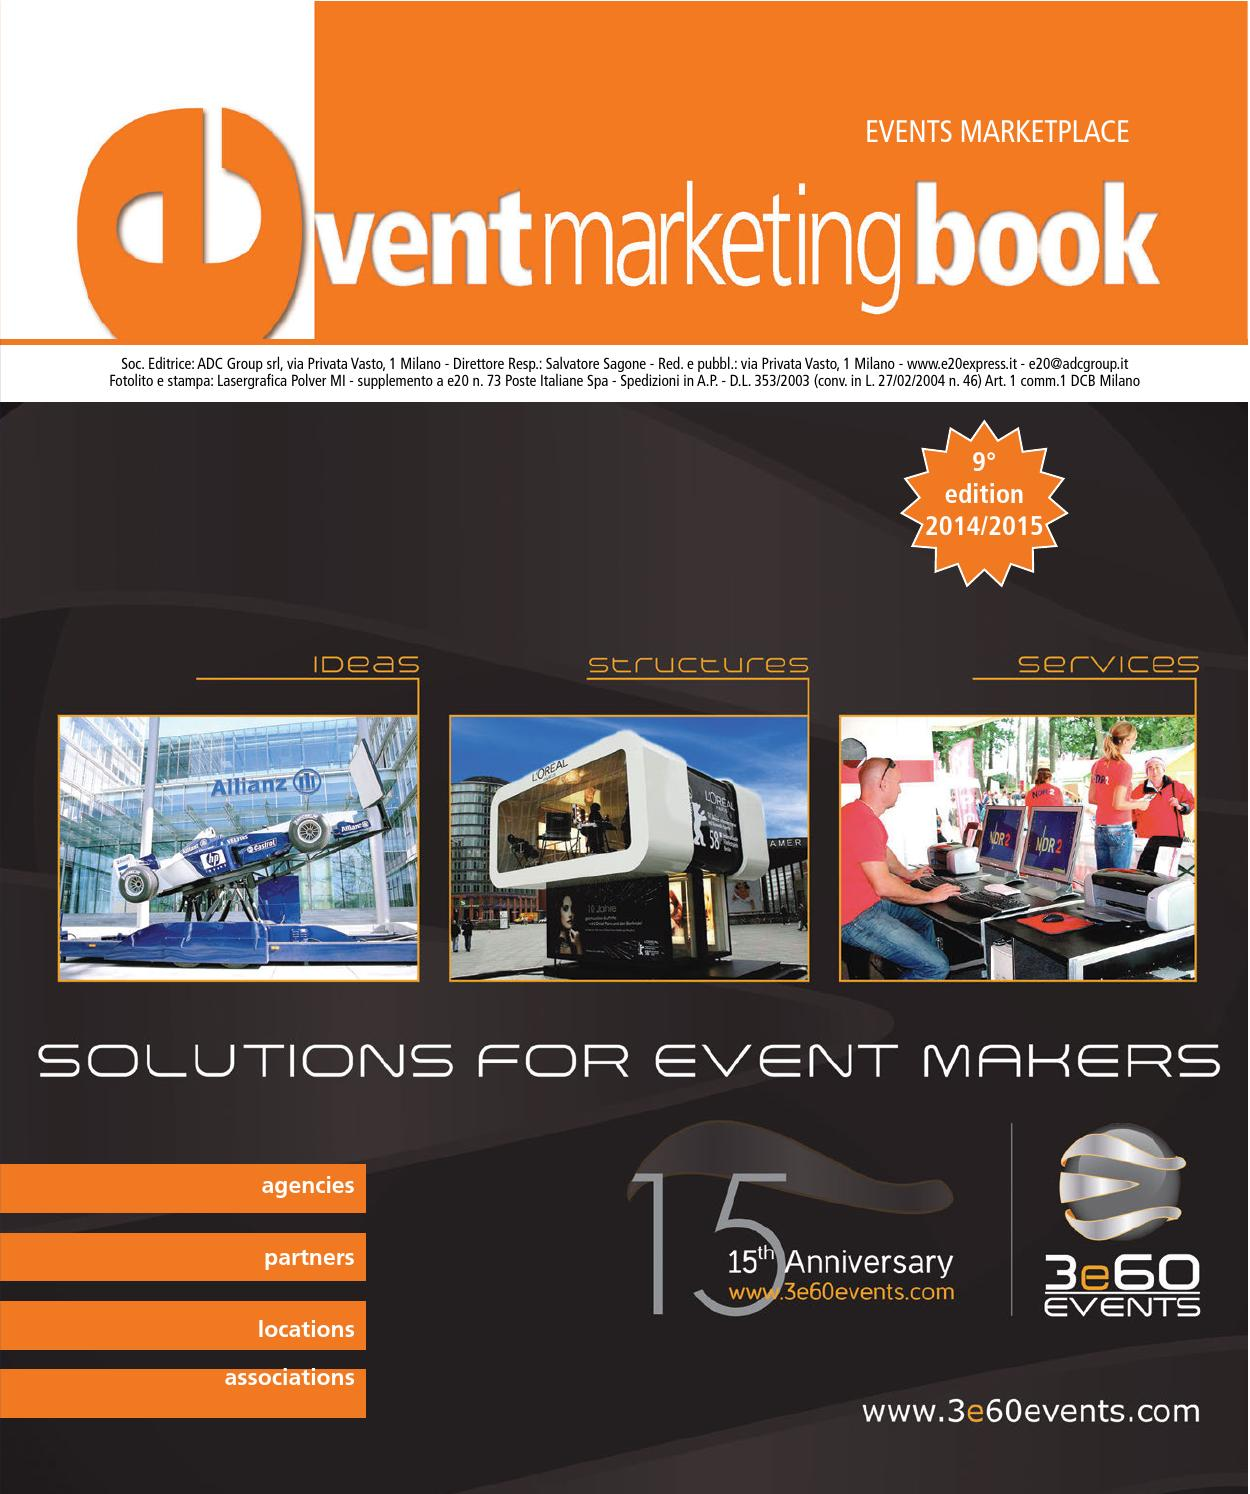 Event Marketing Book 2014 by ADC Group - issuu c4def24dafc0